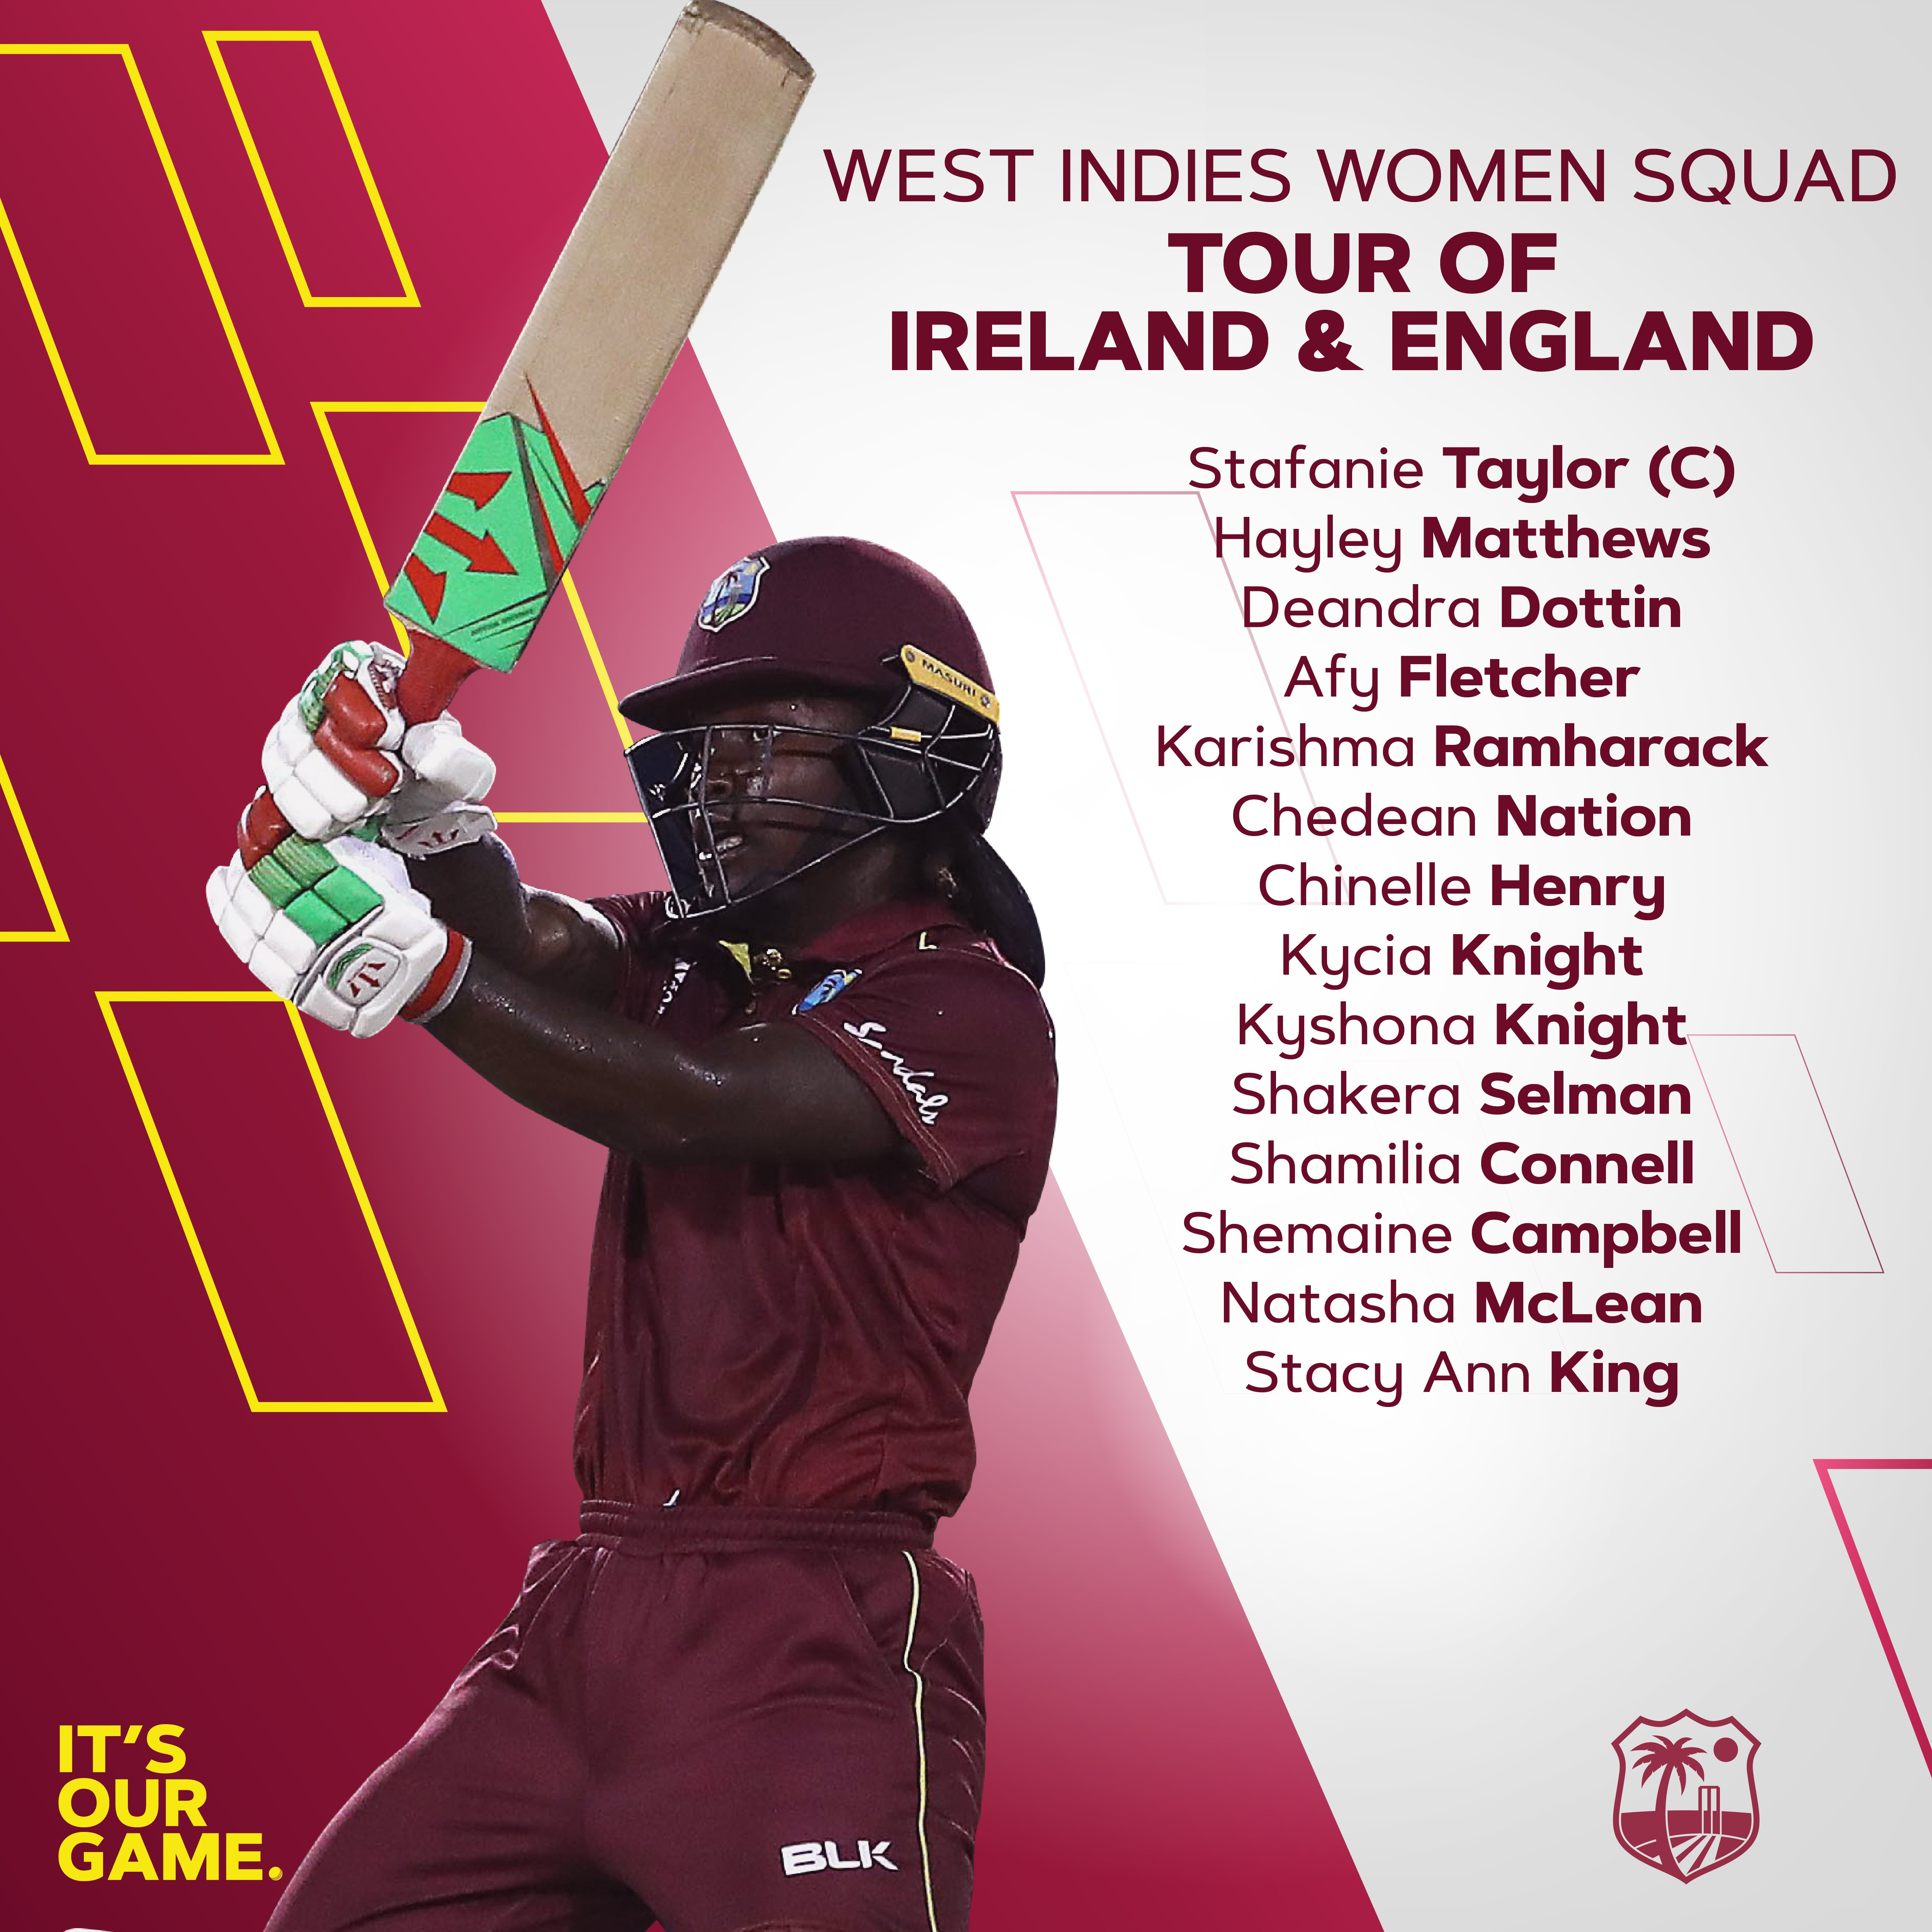 WEST INDIES WOMEN SQUAD ANNOUNCED FOR IRELAND AND ENGLAND